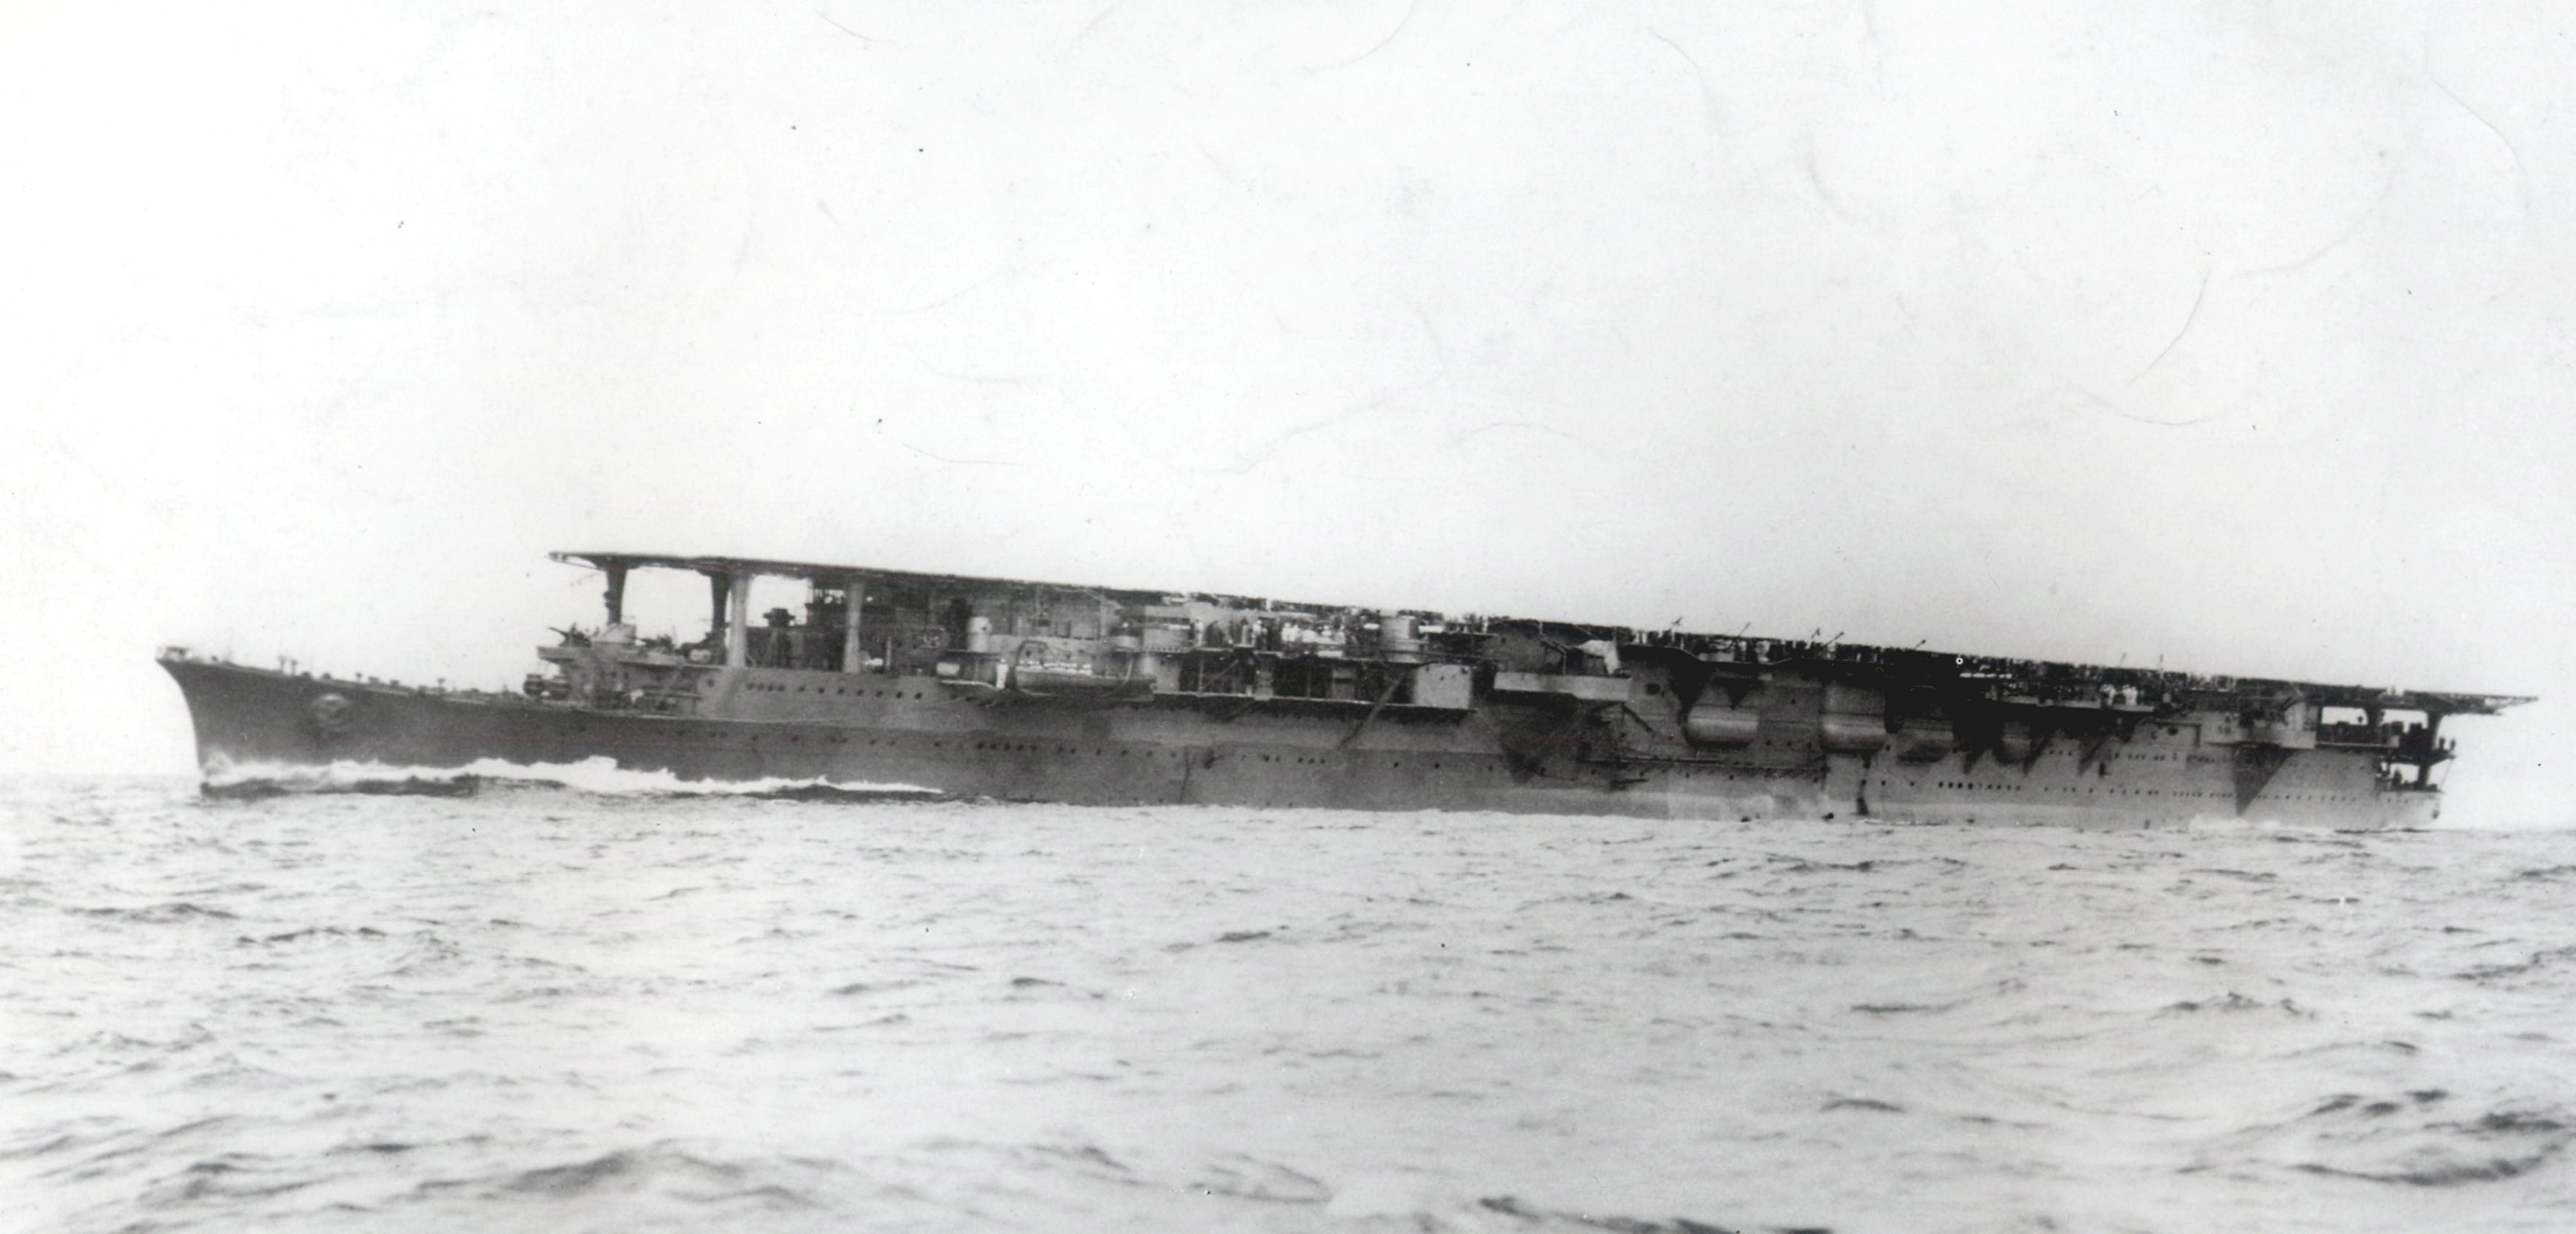 https://upload.wikimedia.org/wikipedia/commons/6/6b/Japanese_aircraft_carrier_Ry%C5%ABh%C5%8D.jpg